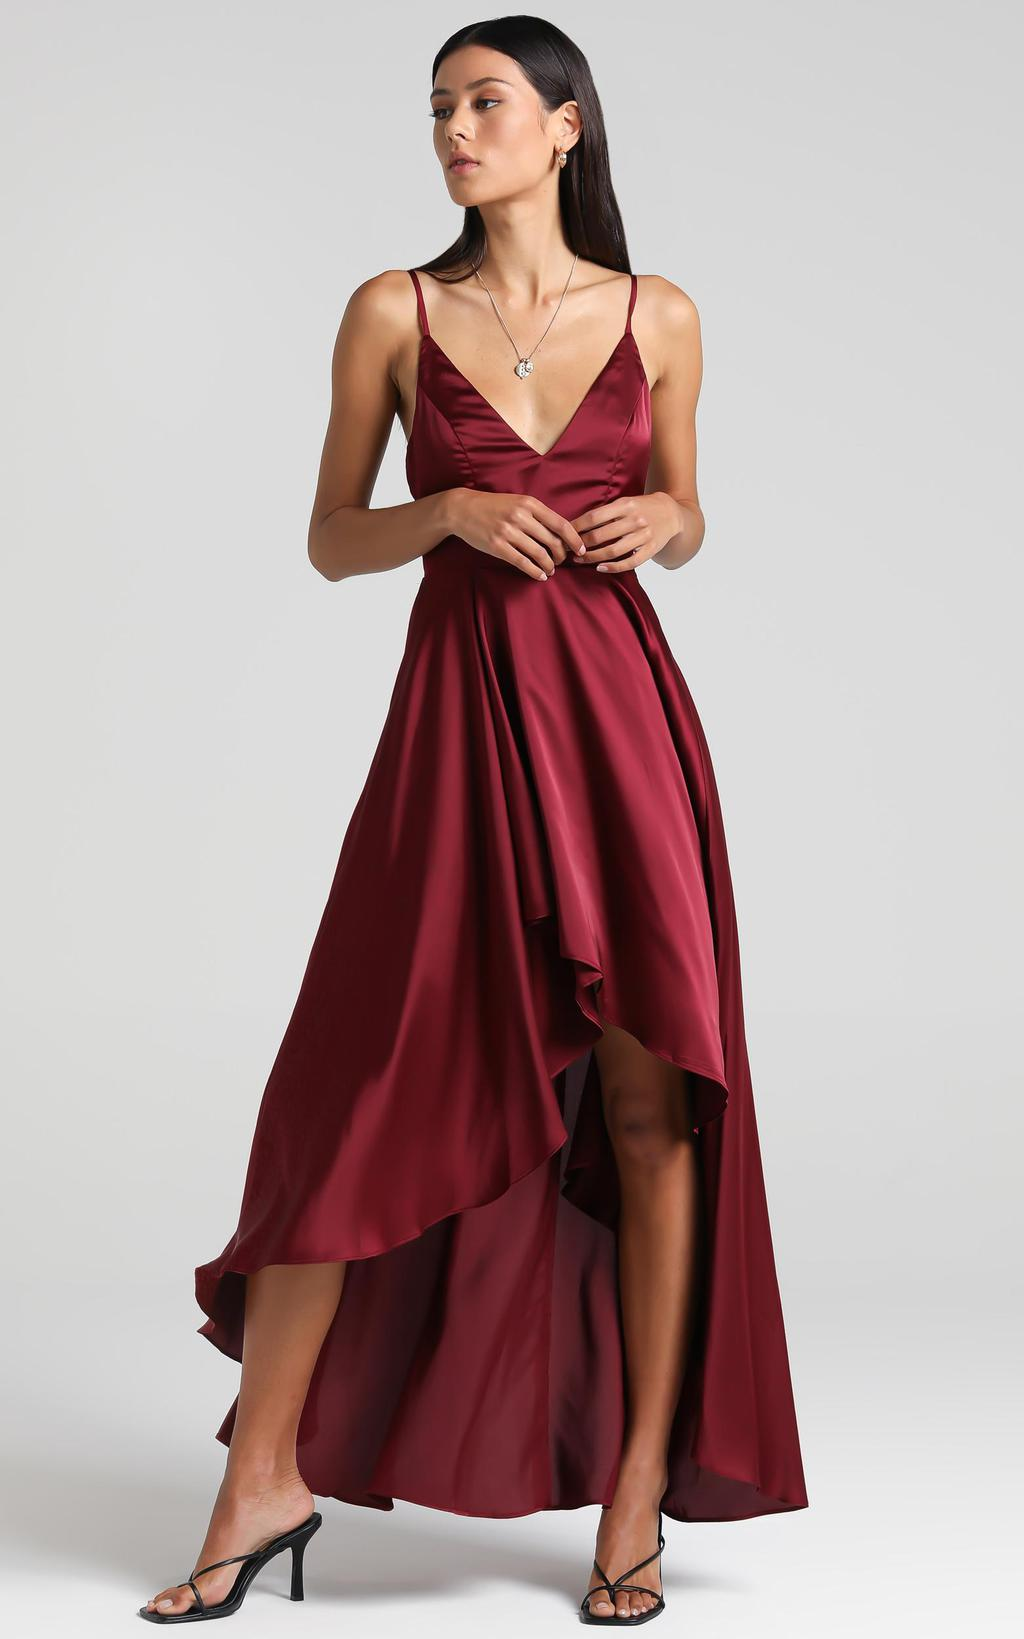 High-low dress from Showpo